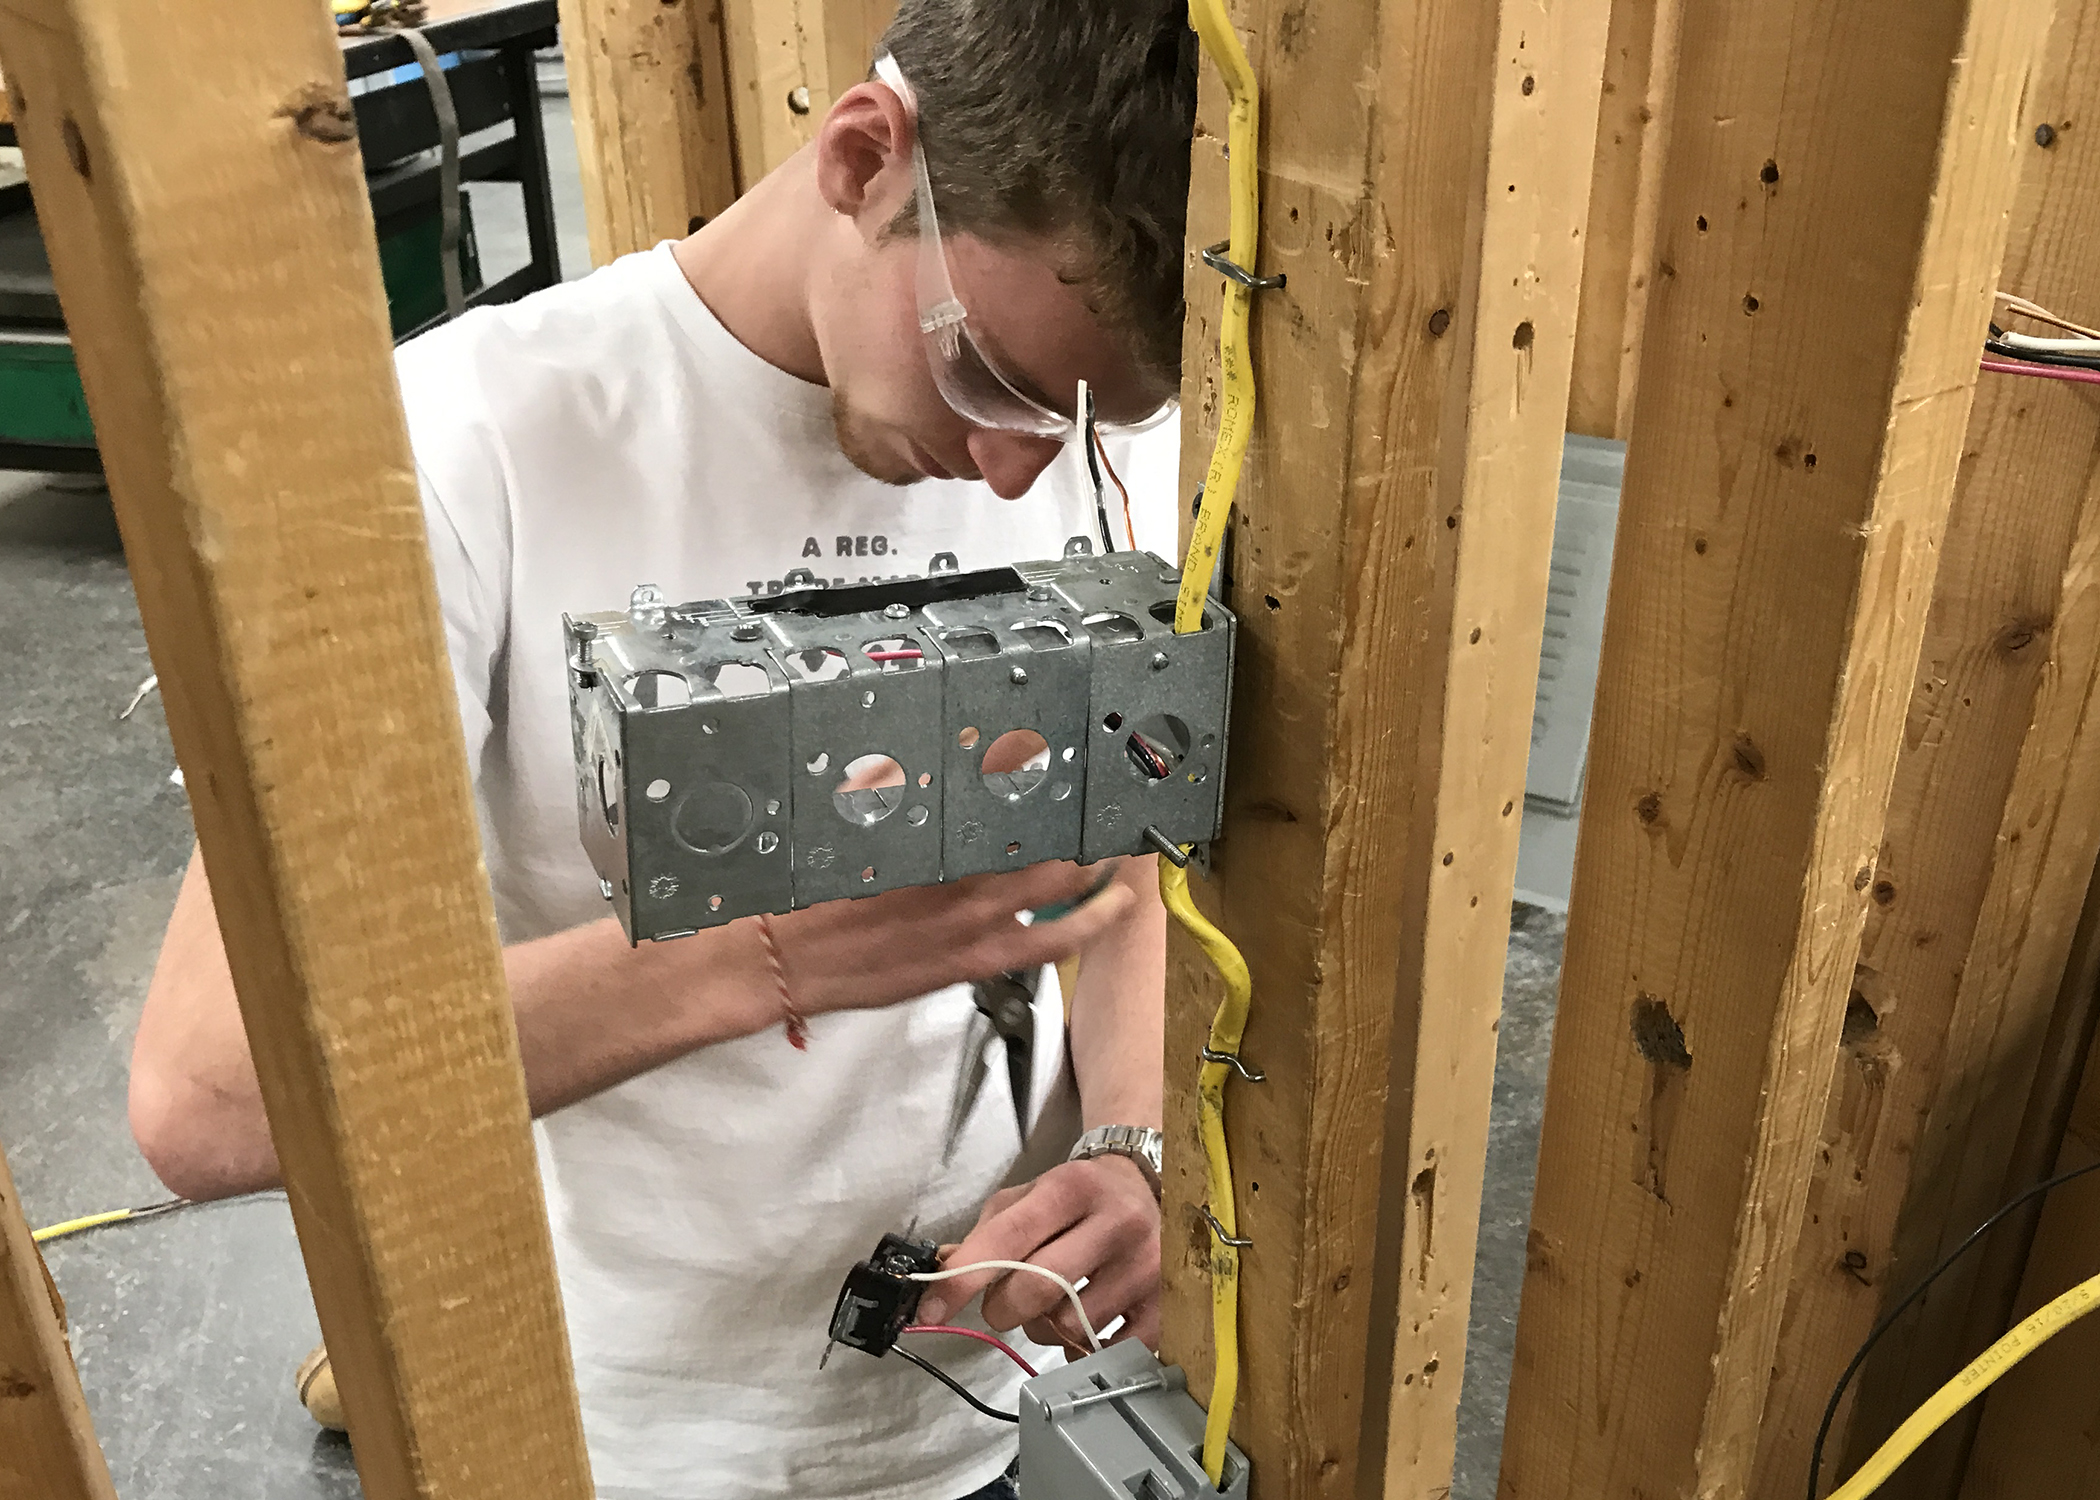 Students works on an electrical box